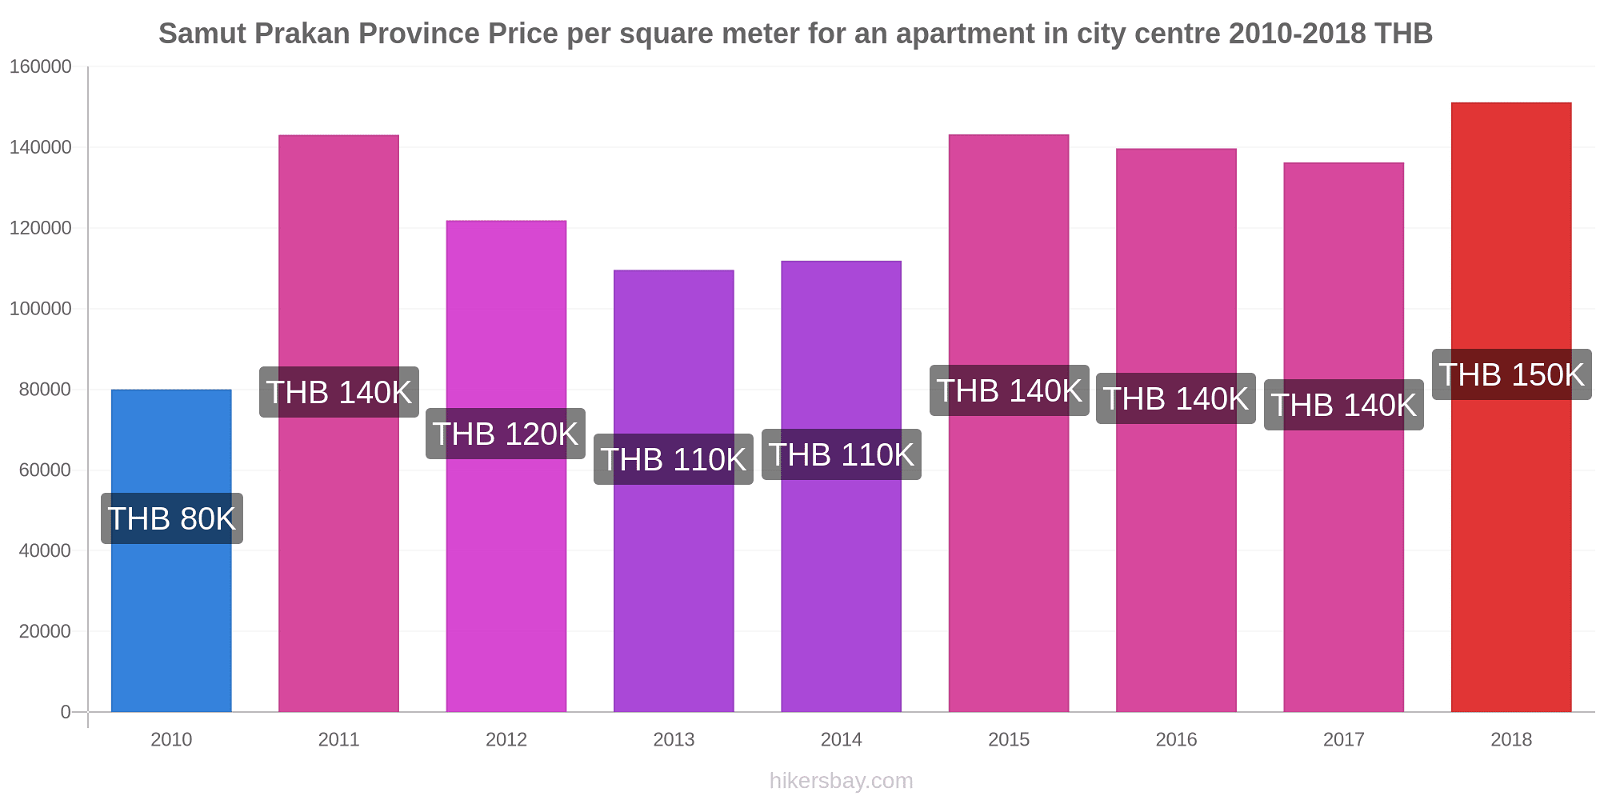 Samut Prakan Province price changes Price per square meter for an apartment in city centre hikersbay.com